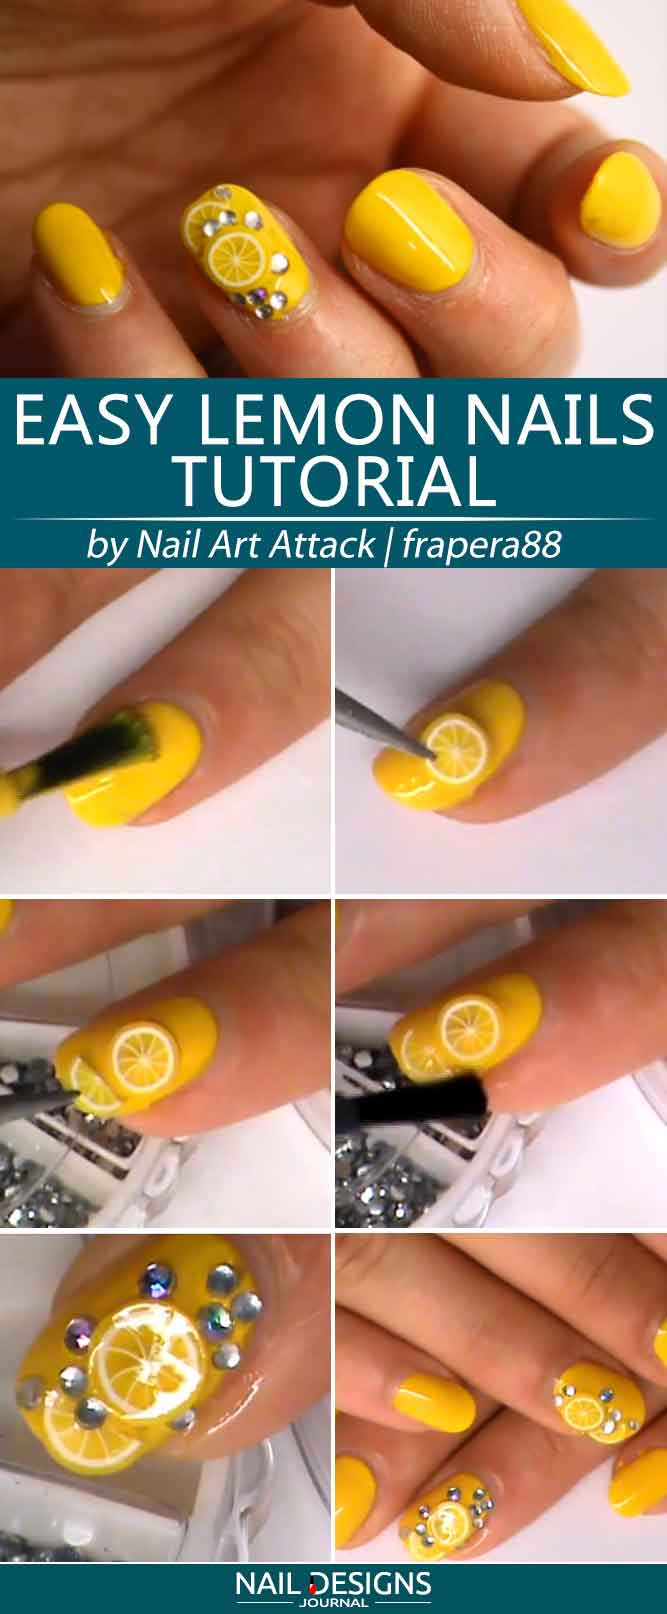 Super Easy Lemon Nails Tutorial #yellownails #fruitsnails #citrusnails